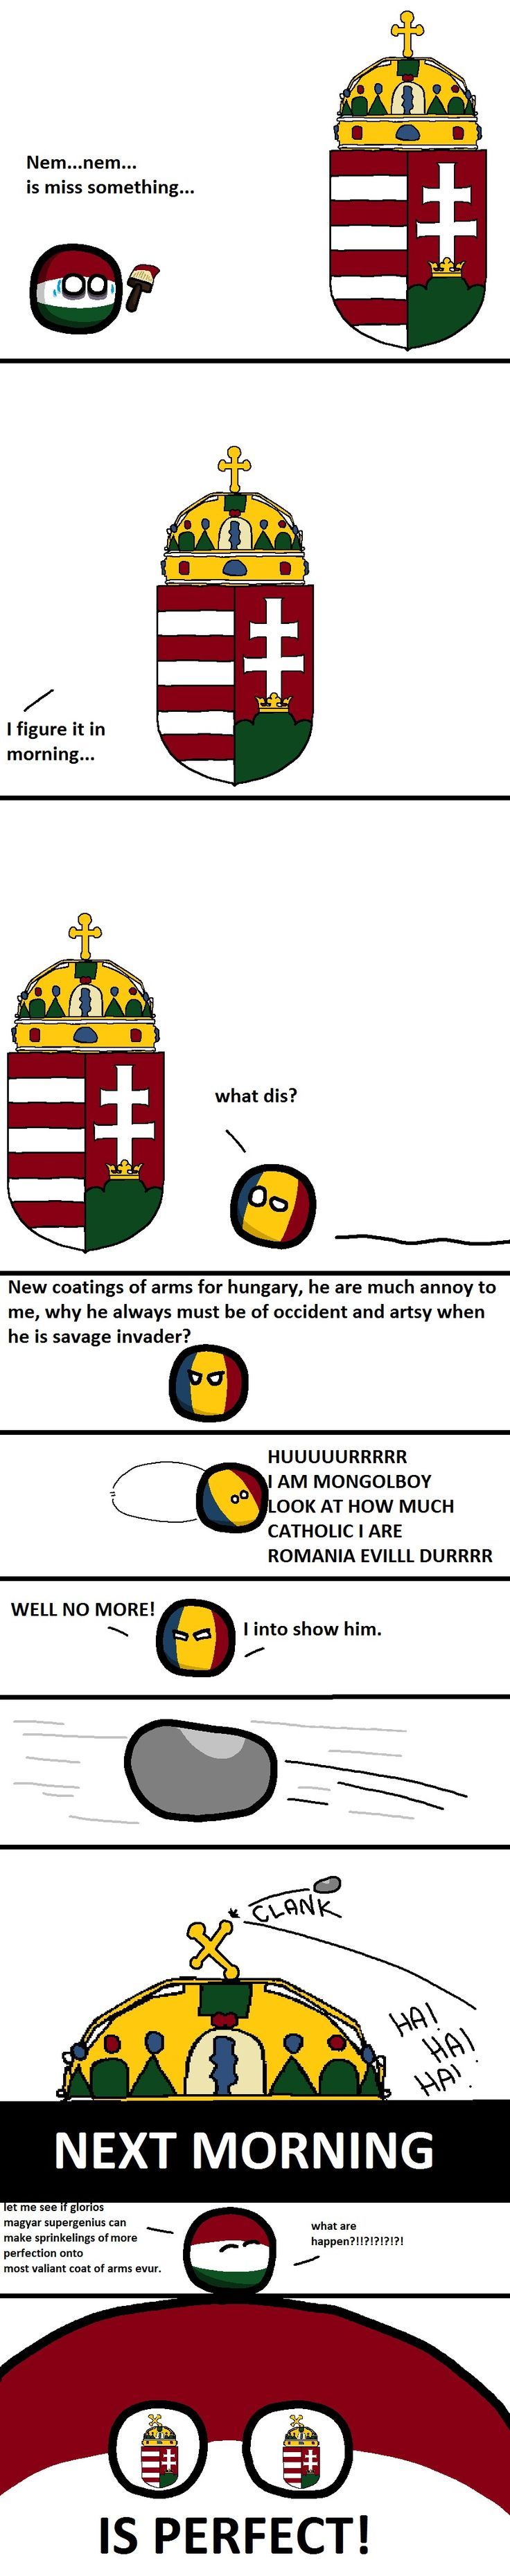 Hungaryball's Coat of Arms pisses off Romaniaball